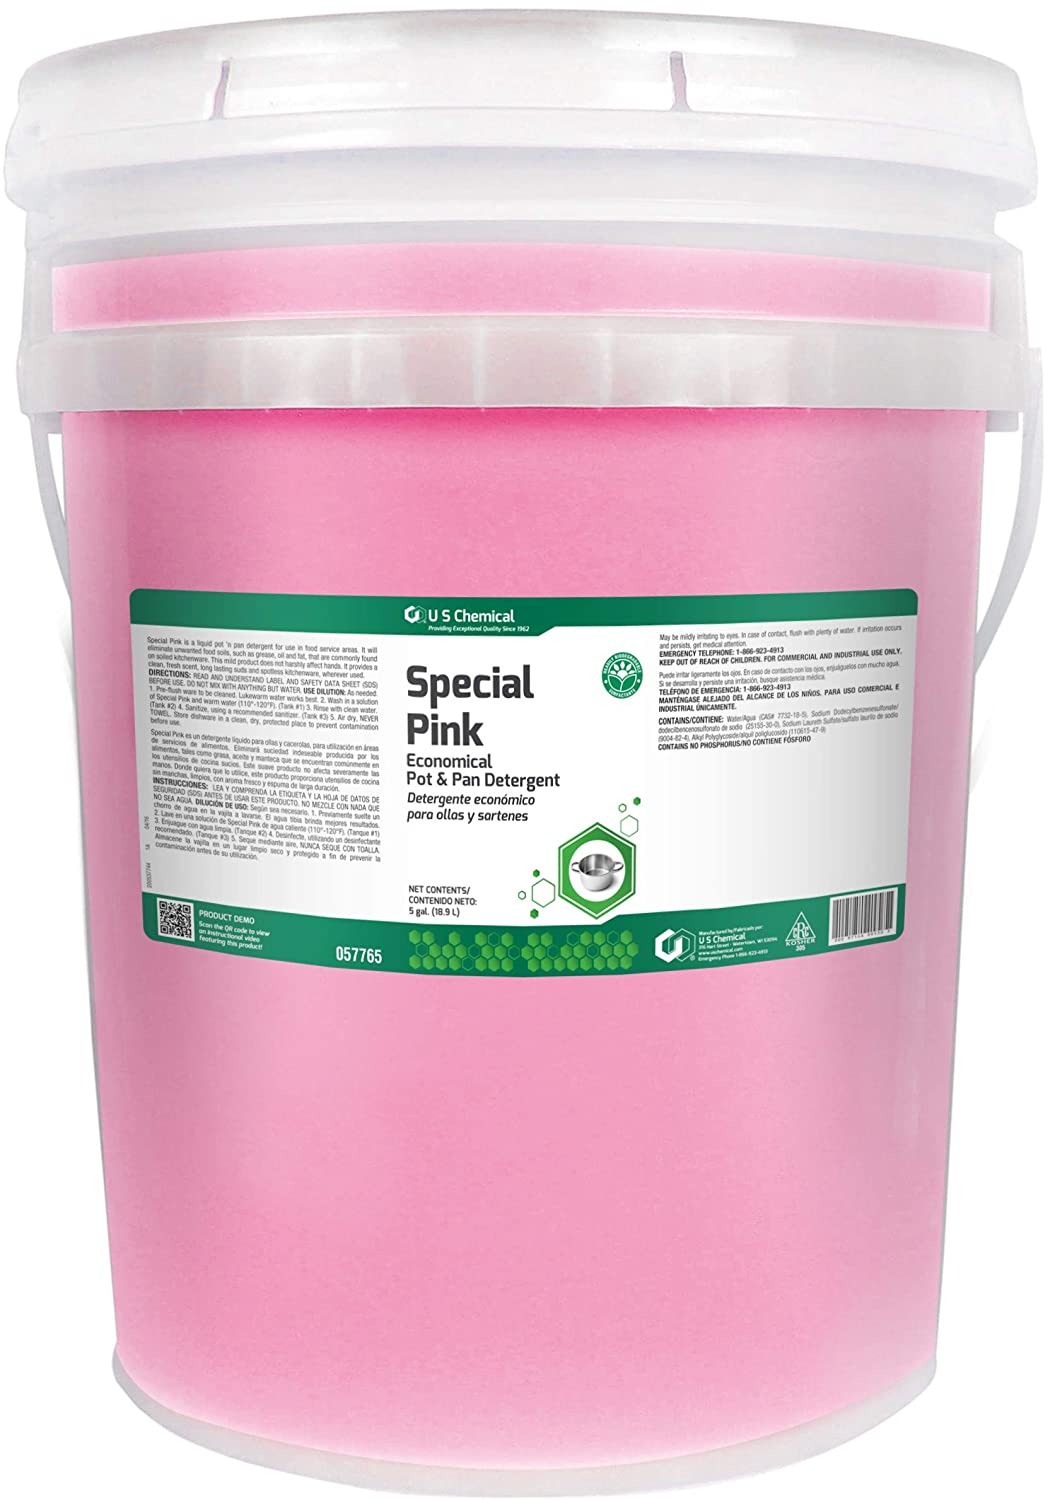 Amazon.com: US Chemical Special Pink Pot and Pan Detergent Liquid, 5 Gallon - 1 each.: Health & Personal Care